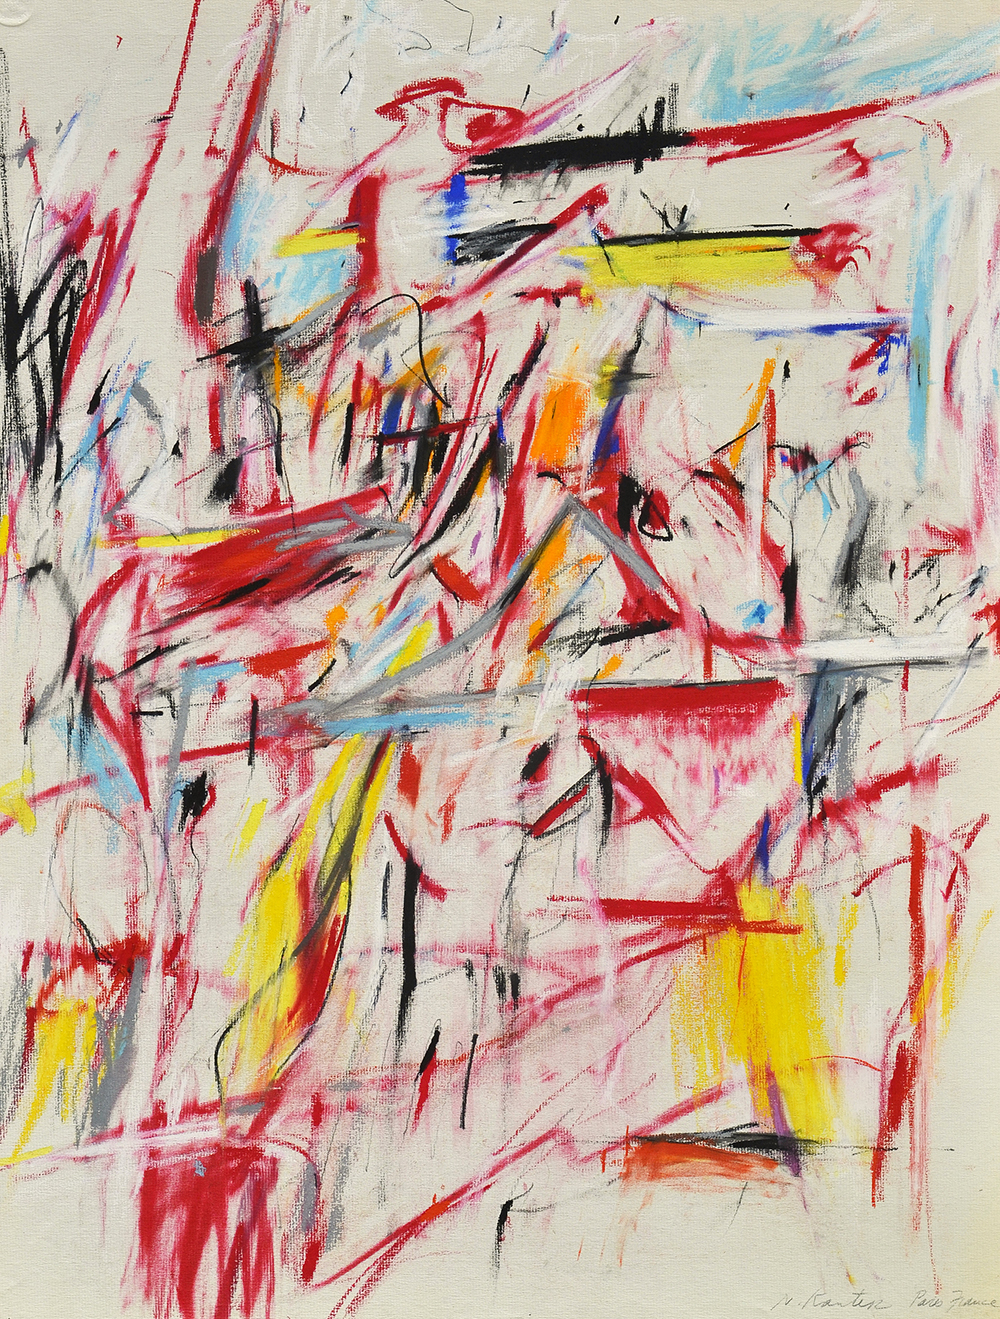 #43 Untitled  , Pastel and charcoal on Strathmore laid paper, 1958, 25 x 19 inches